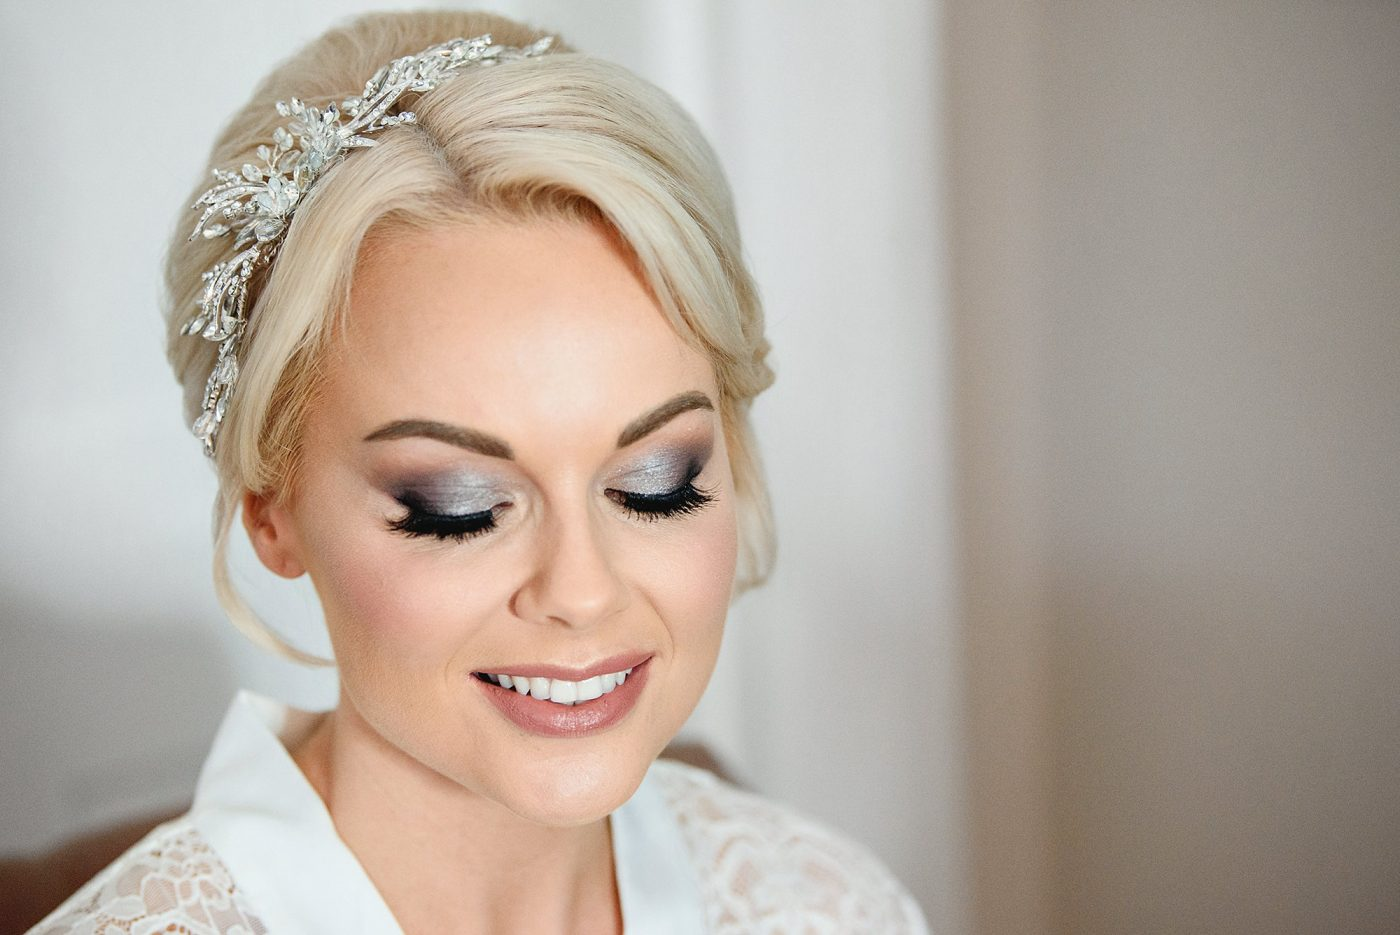 BRIDE WITH SMOKEY EYE MAKEUP